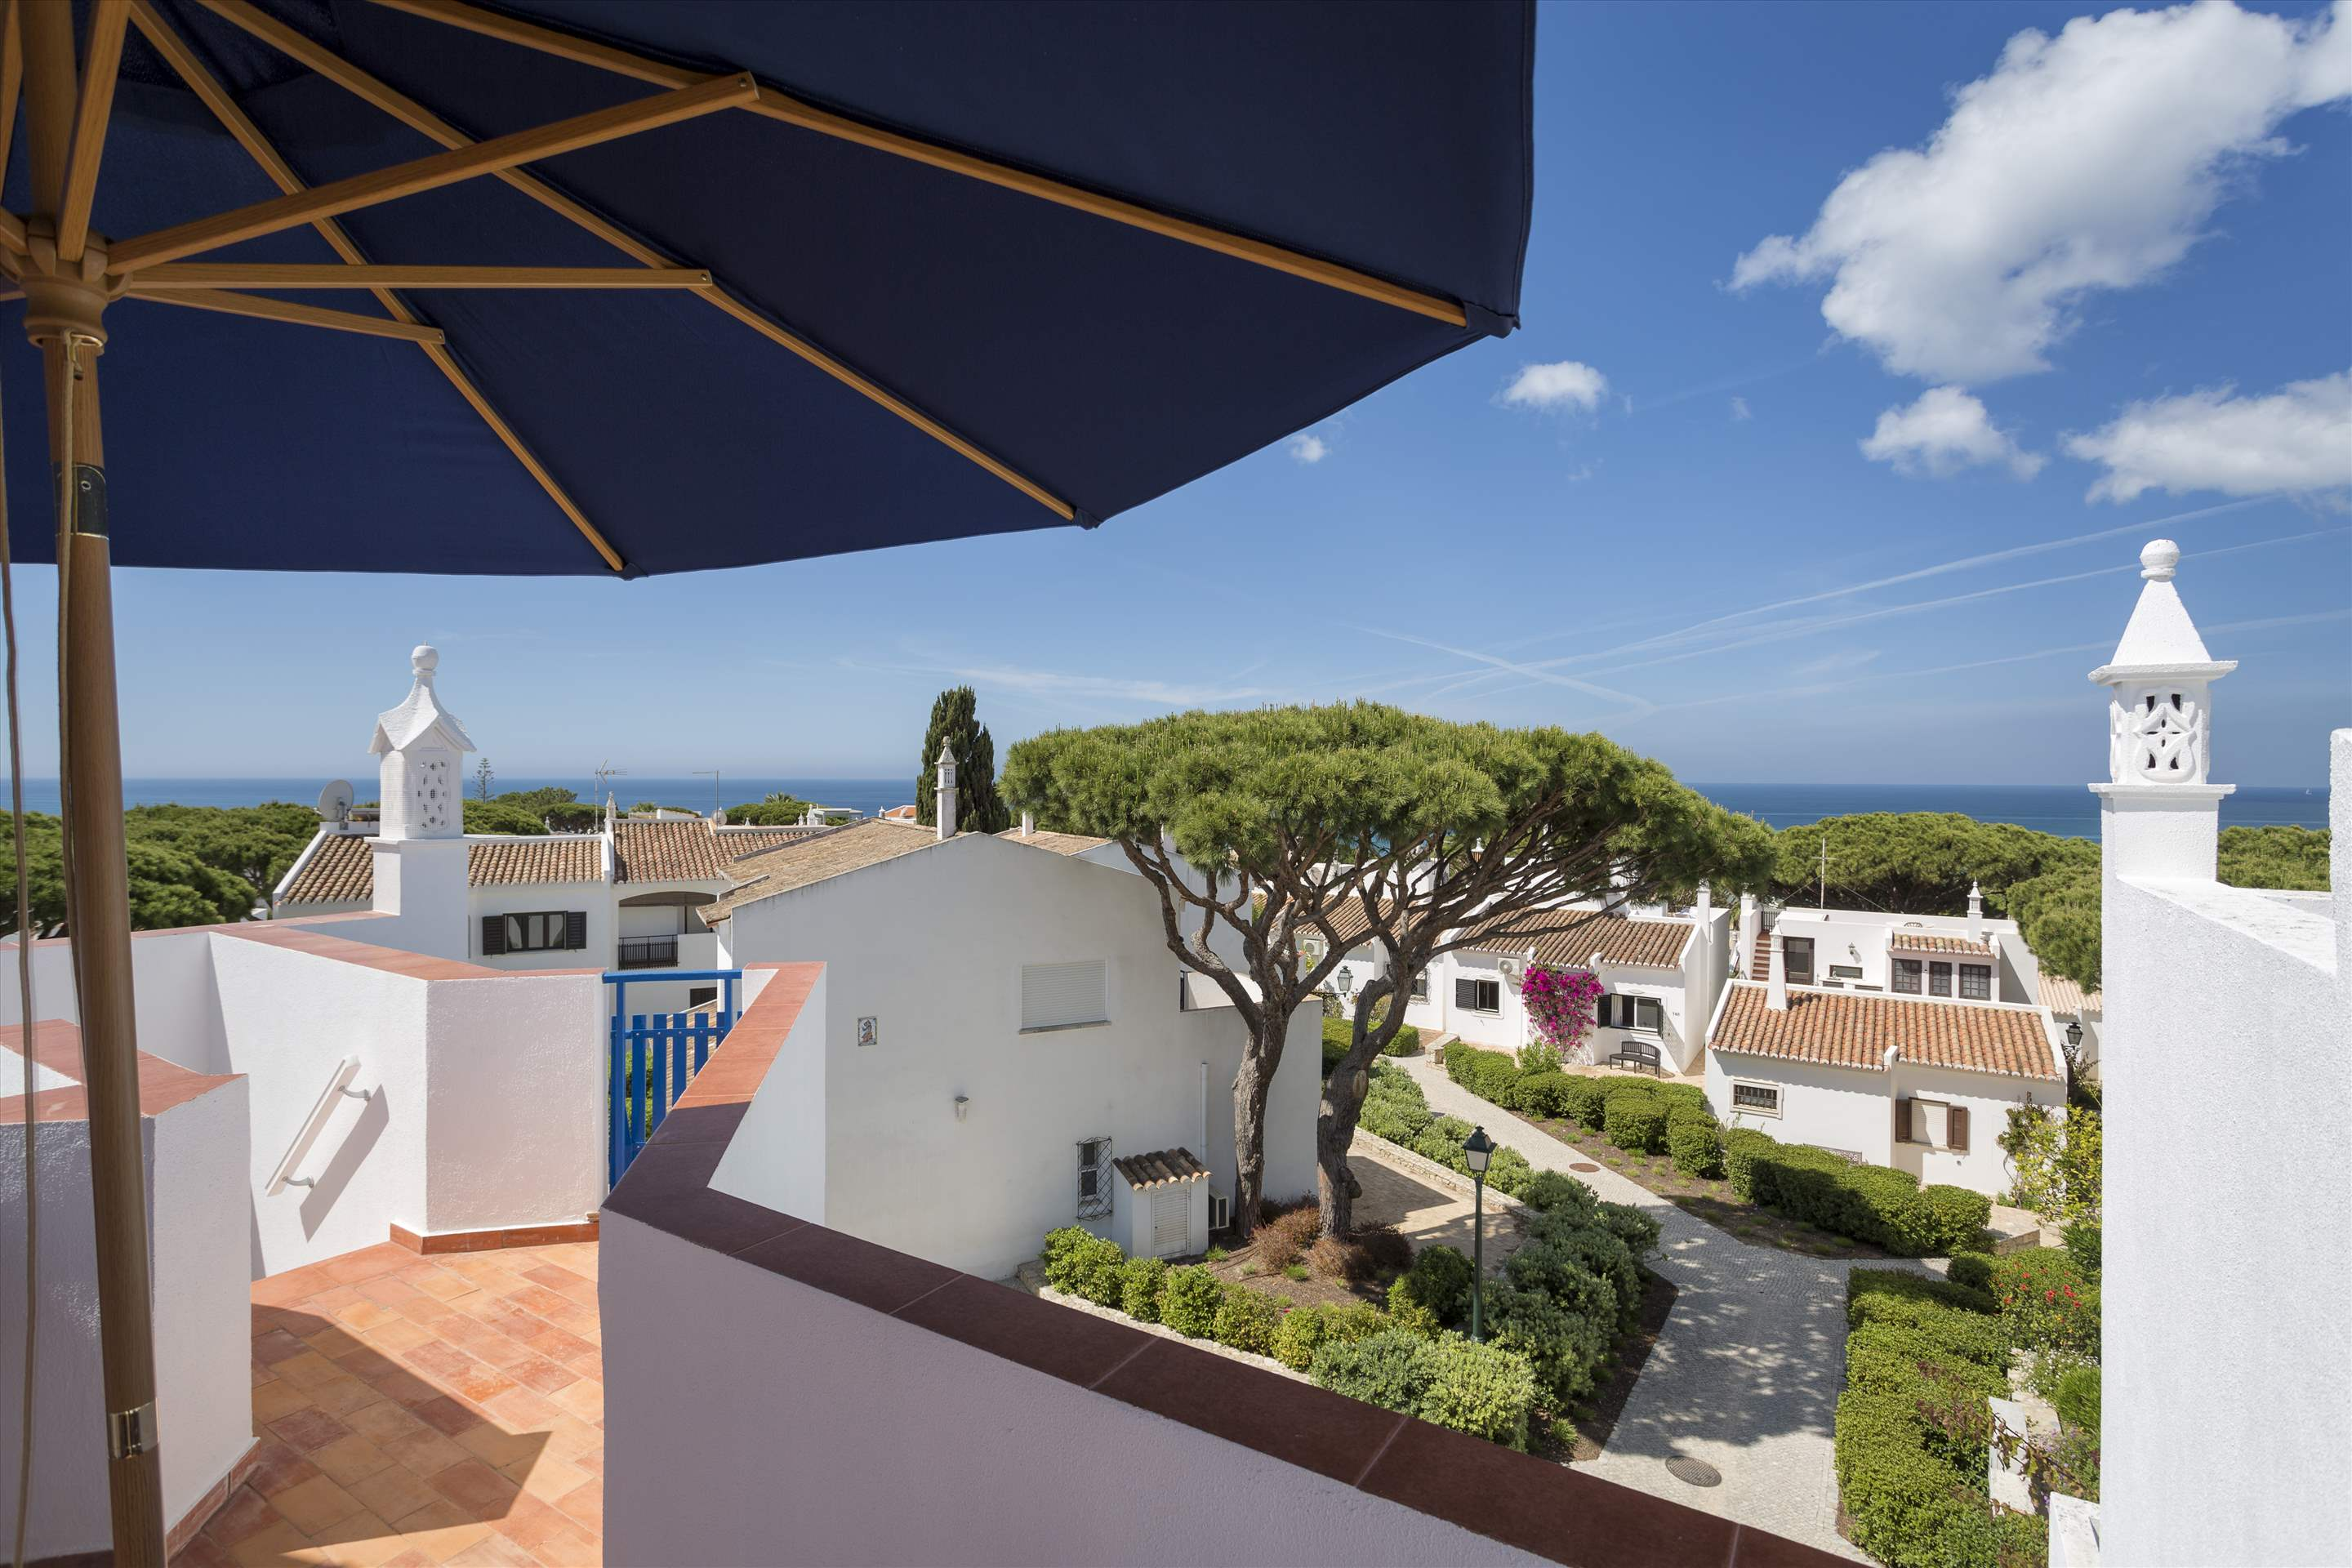 Townhouse Megan, 3 bedroom villa in Vale do Lobo, Algarve Photo #10